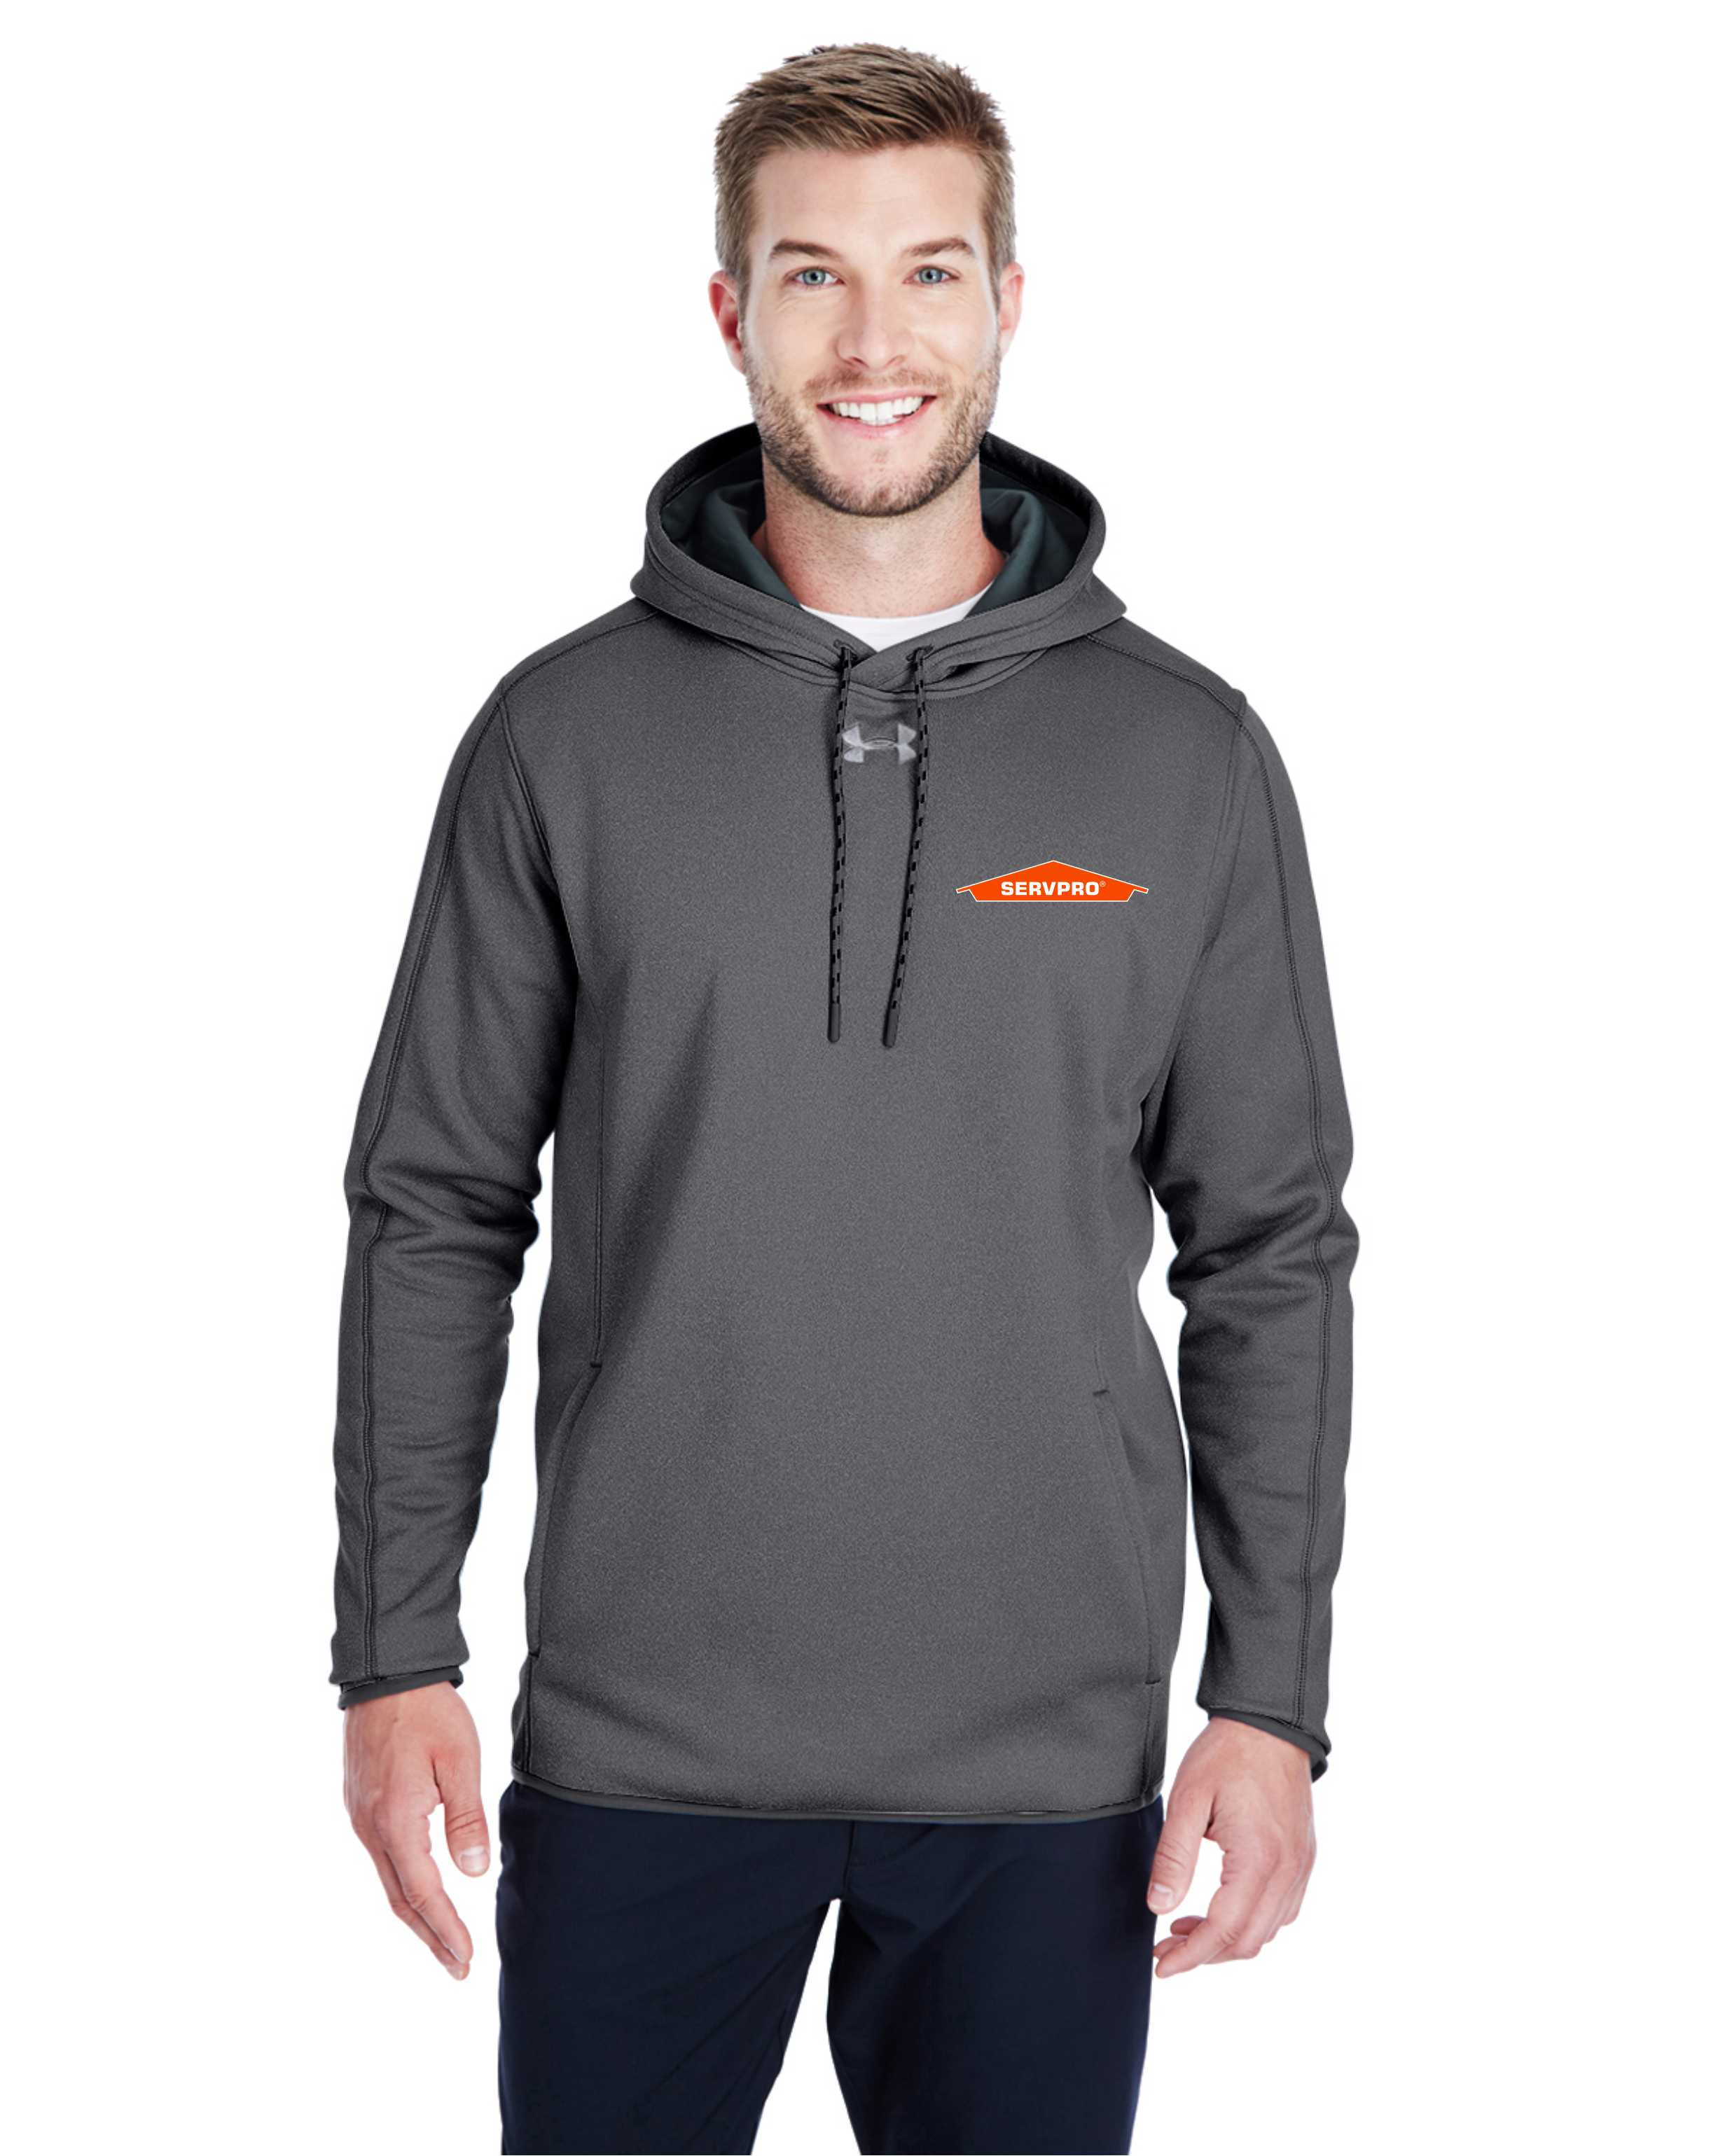 Under Armour Men's Double Threat Armour Fleece® Hoodie-servproperfectfit